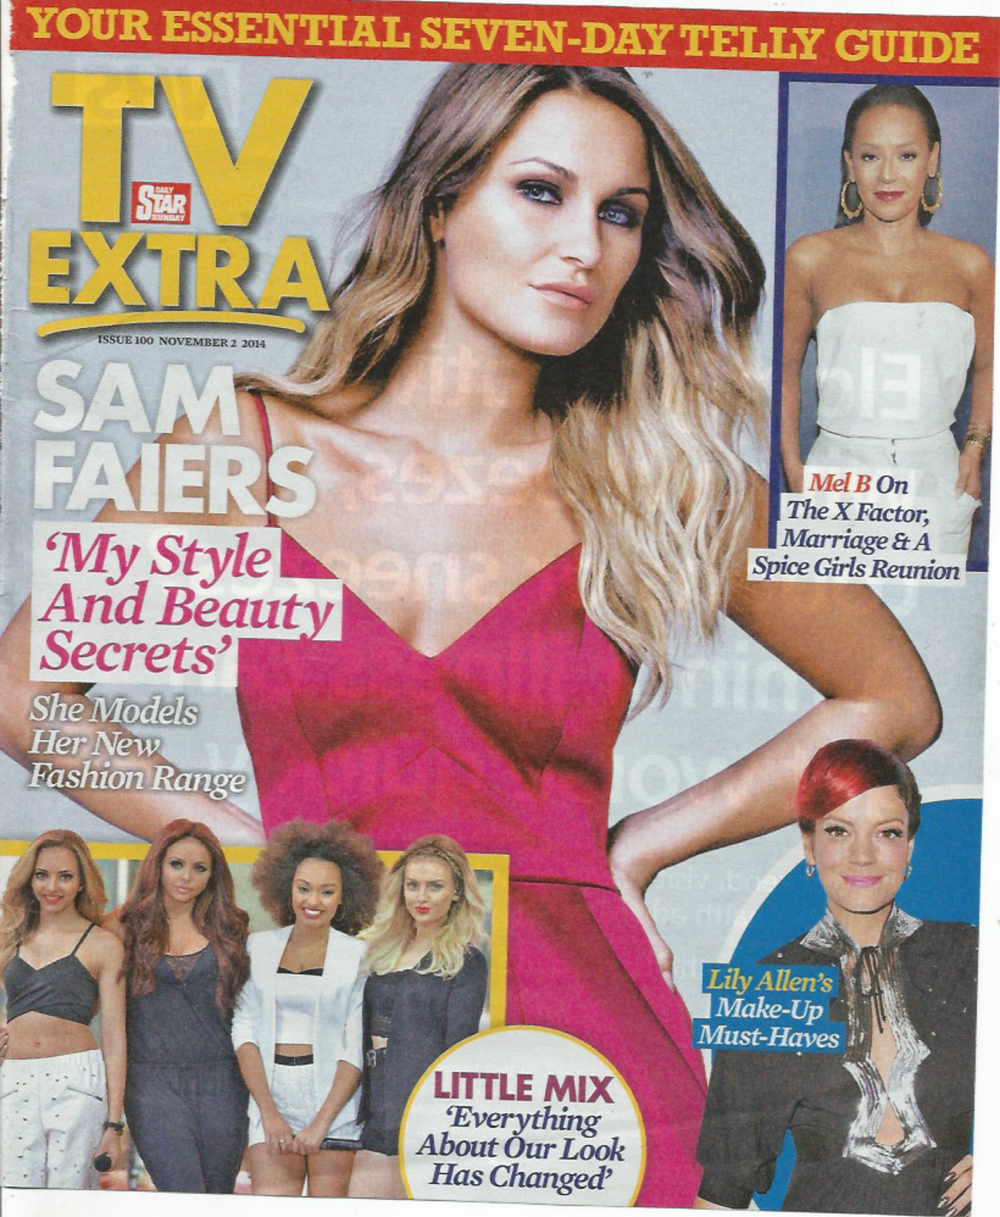 Sam Faiers, TV Extra, 3rd November 2014-1.jpg